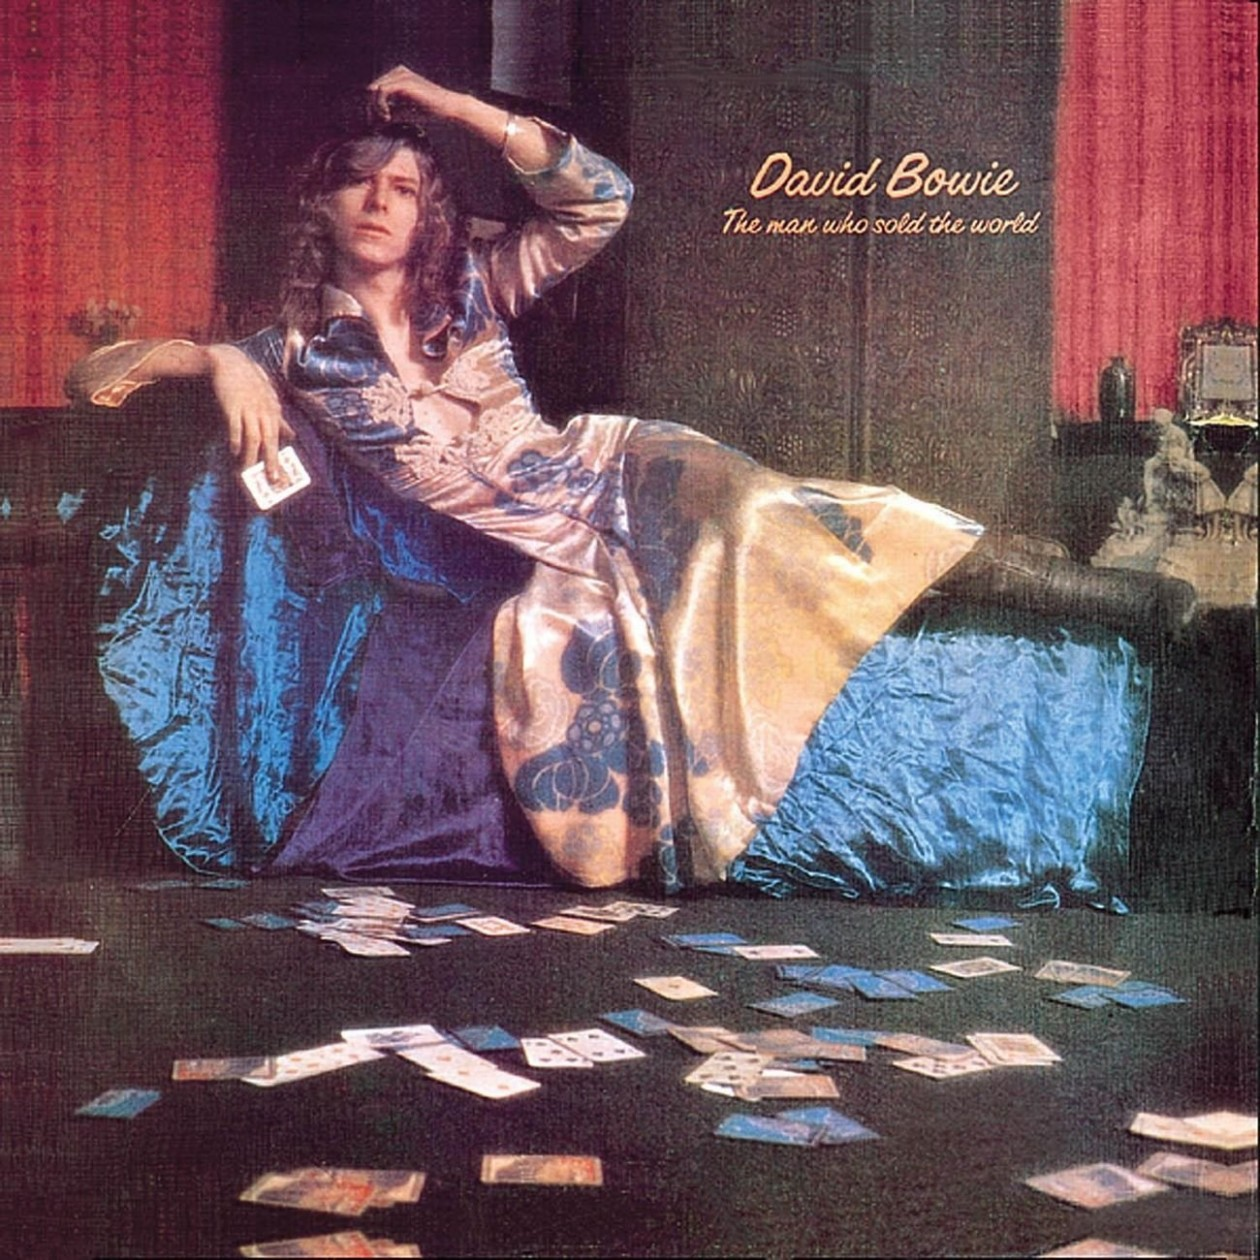 The Man Who Sold The World David Bowie album